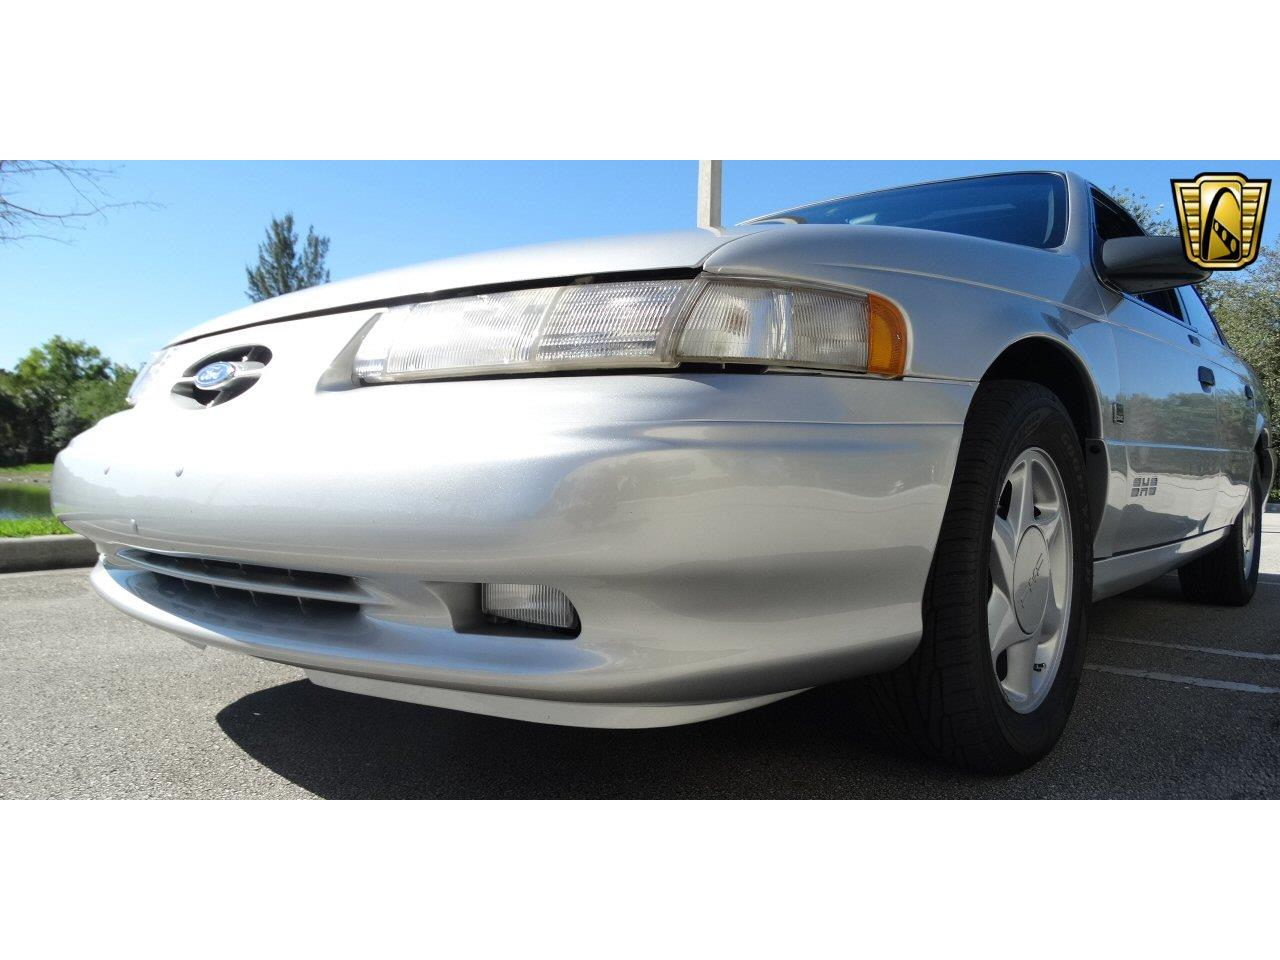 Large Picture of 1993 Taurus located in Coral Springs Florida - $9,995.00 Offered by Gateway Classic Cars - Fort Lauderdale - KEXL